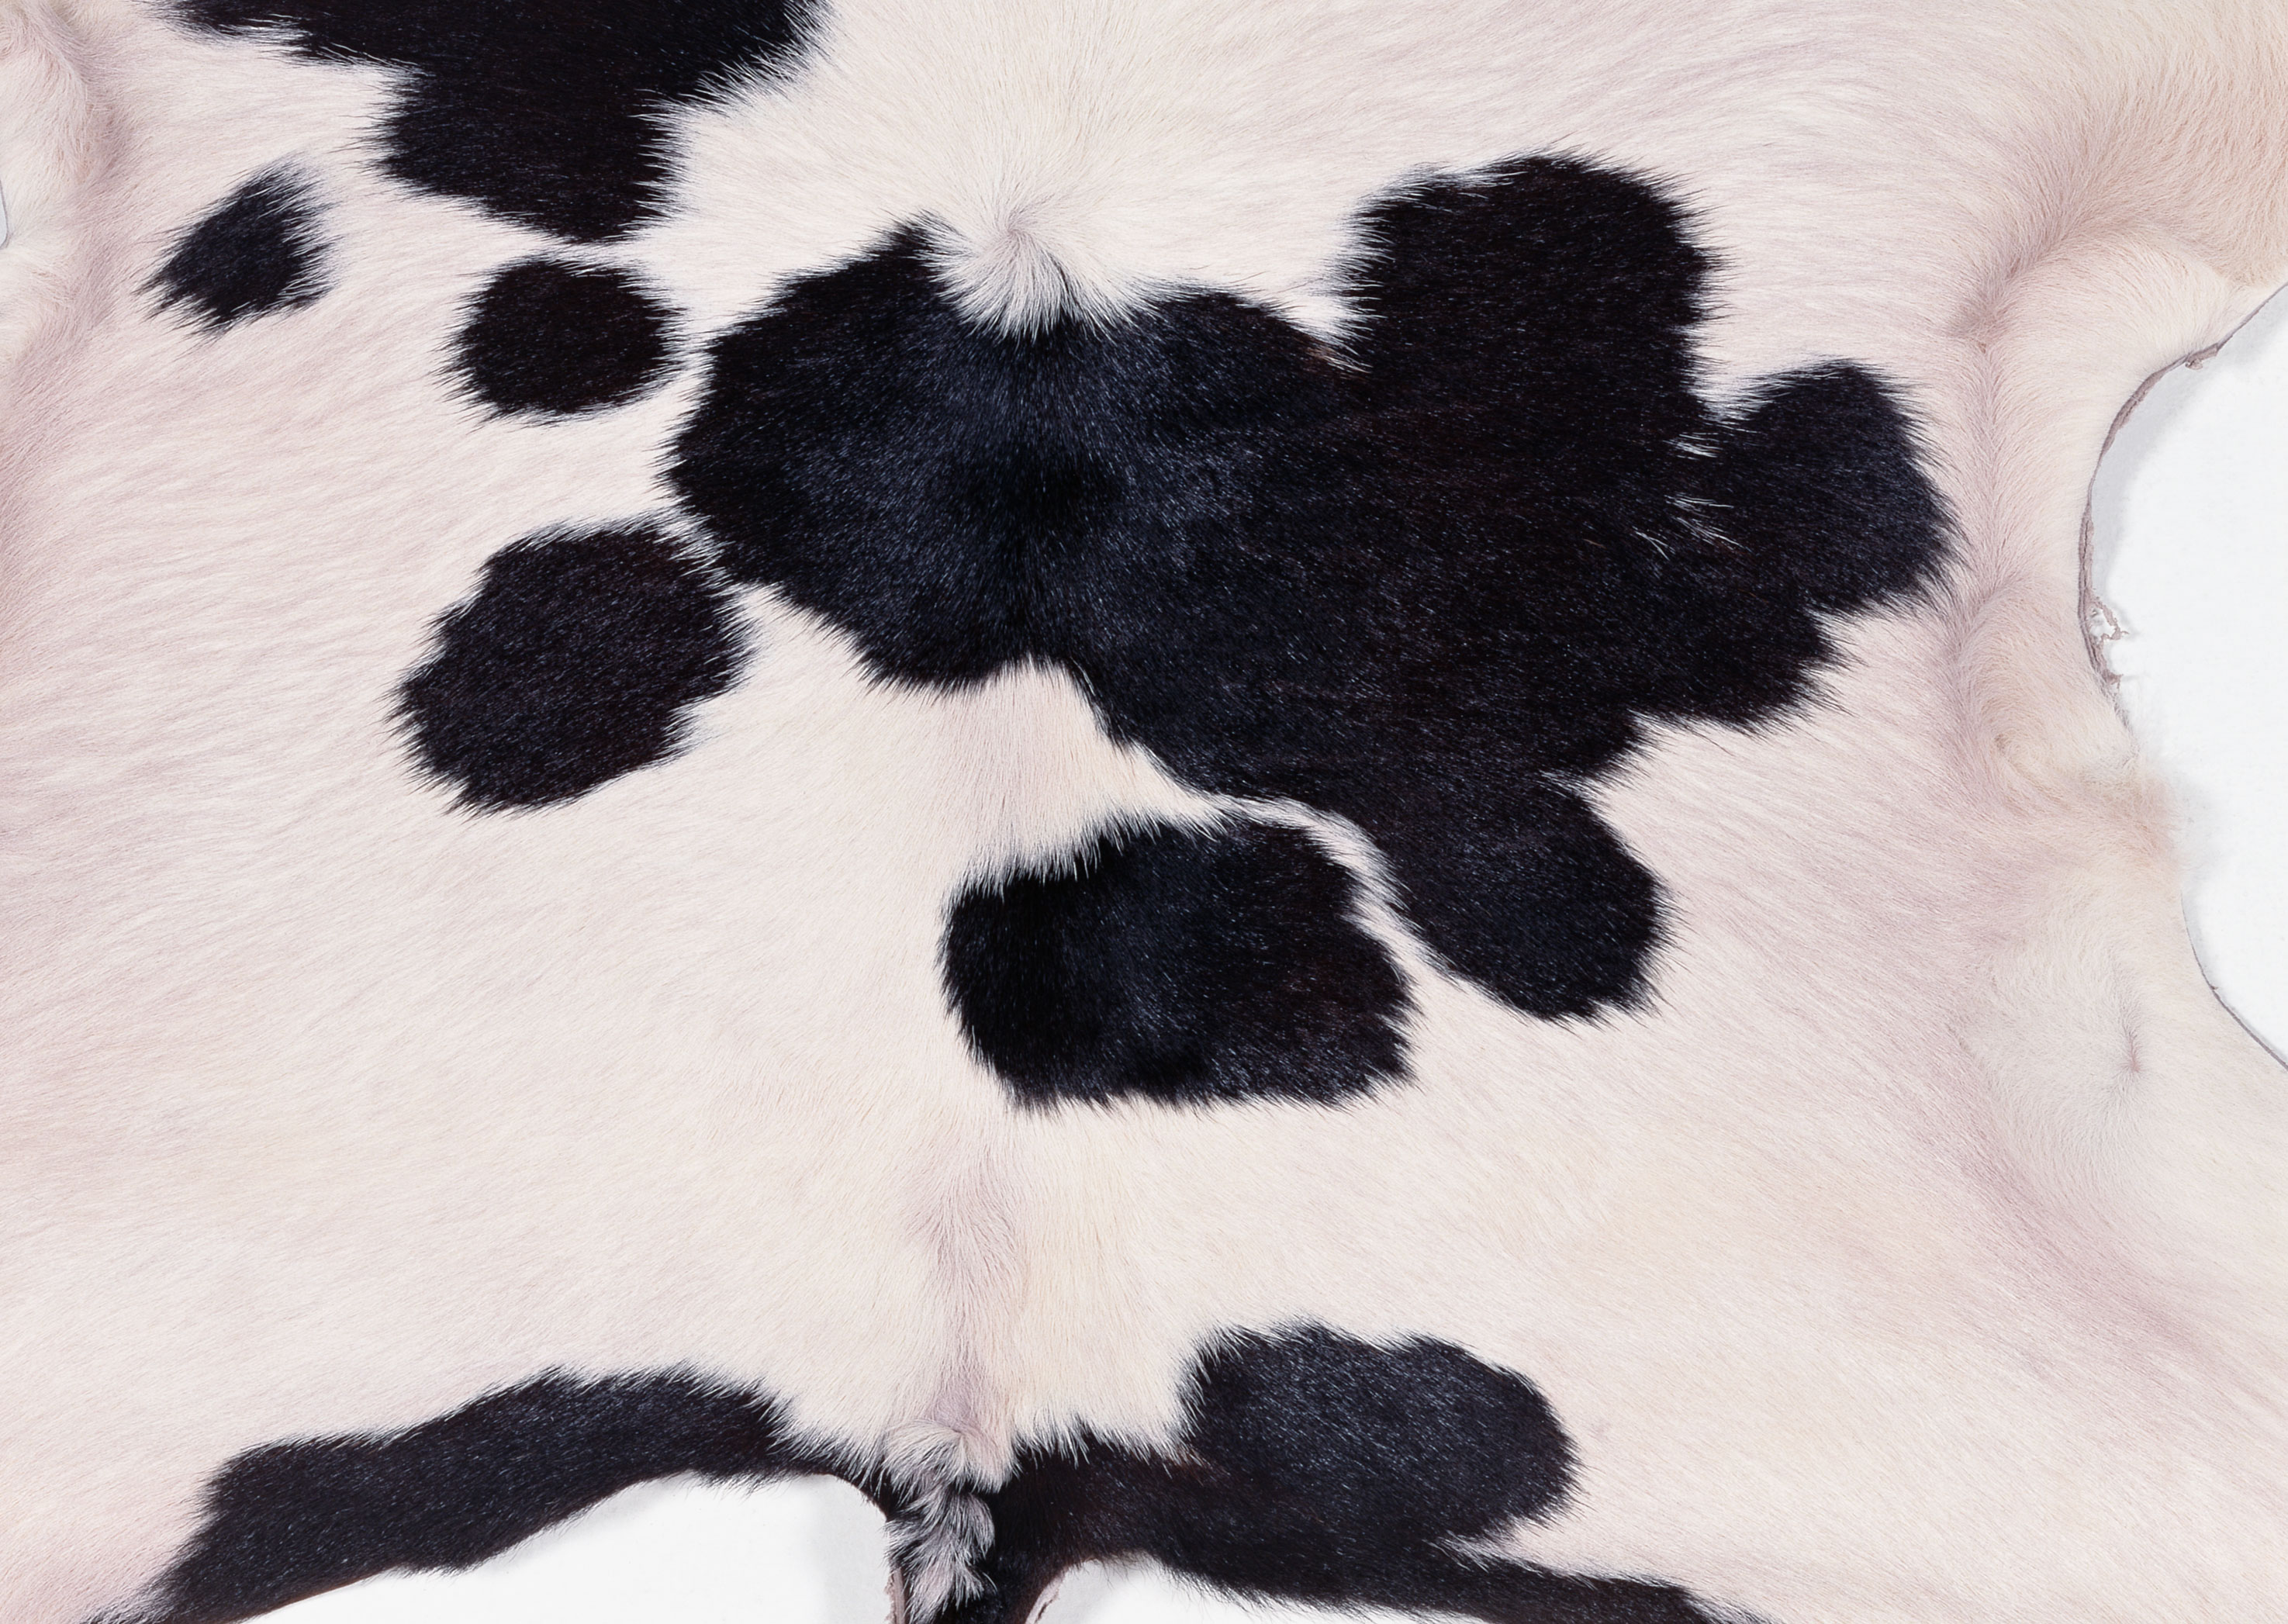 animal cow texture, background